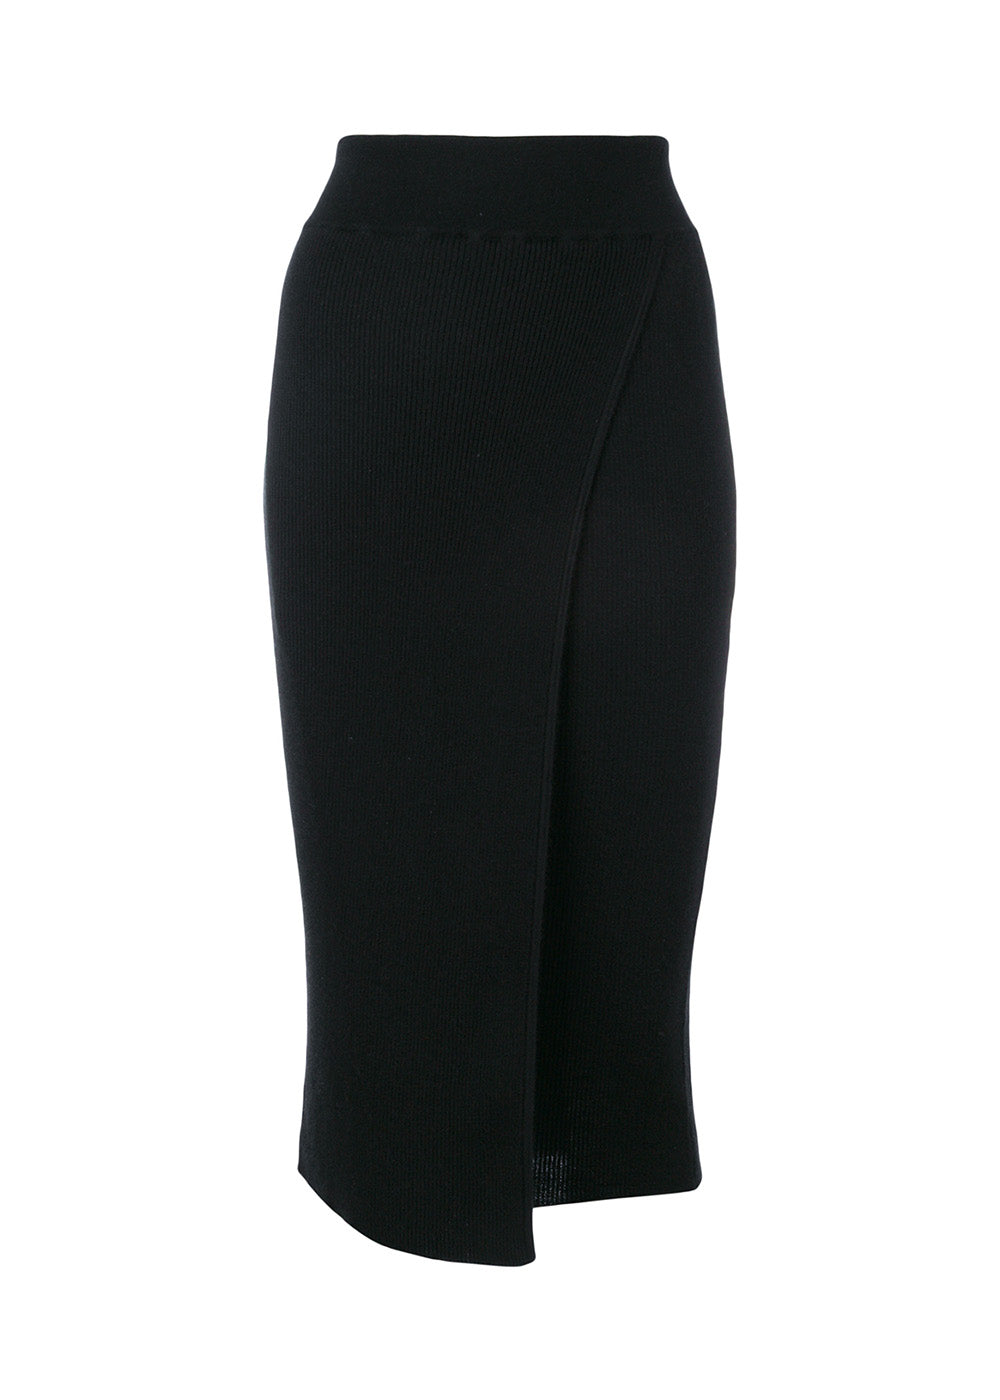 Capri Ribbed Knit Skirt